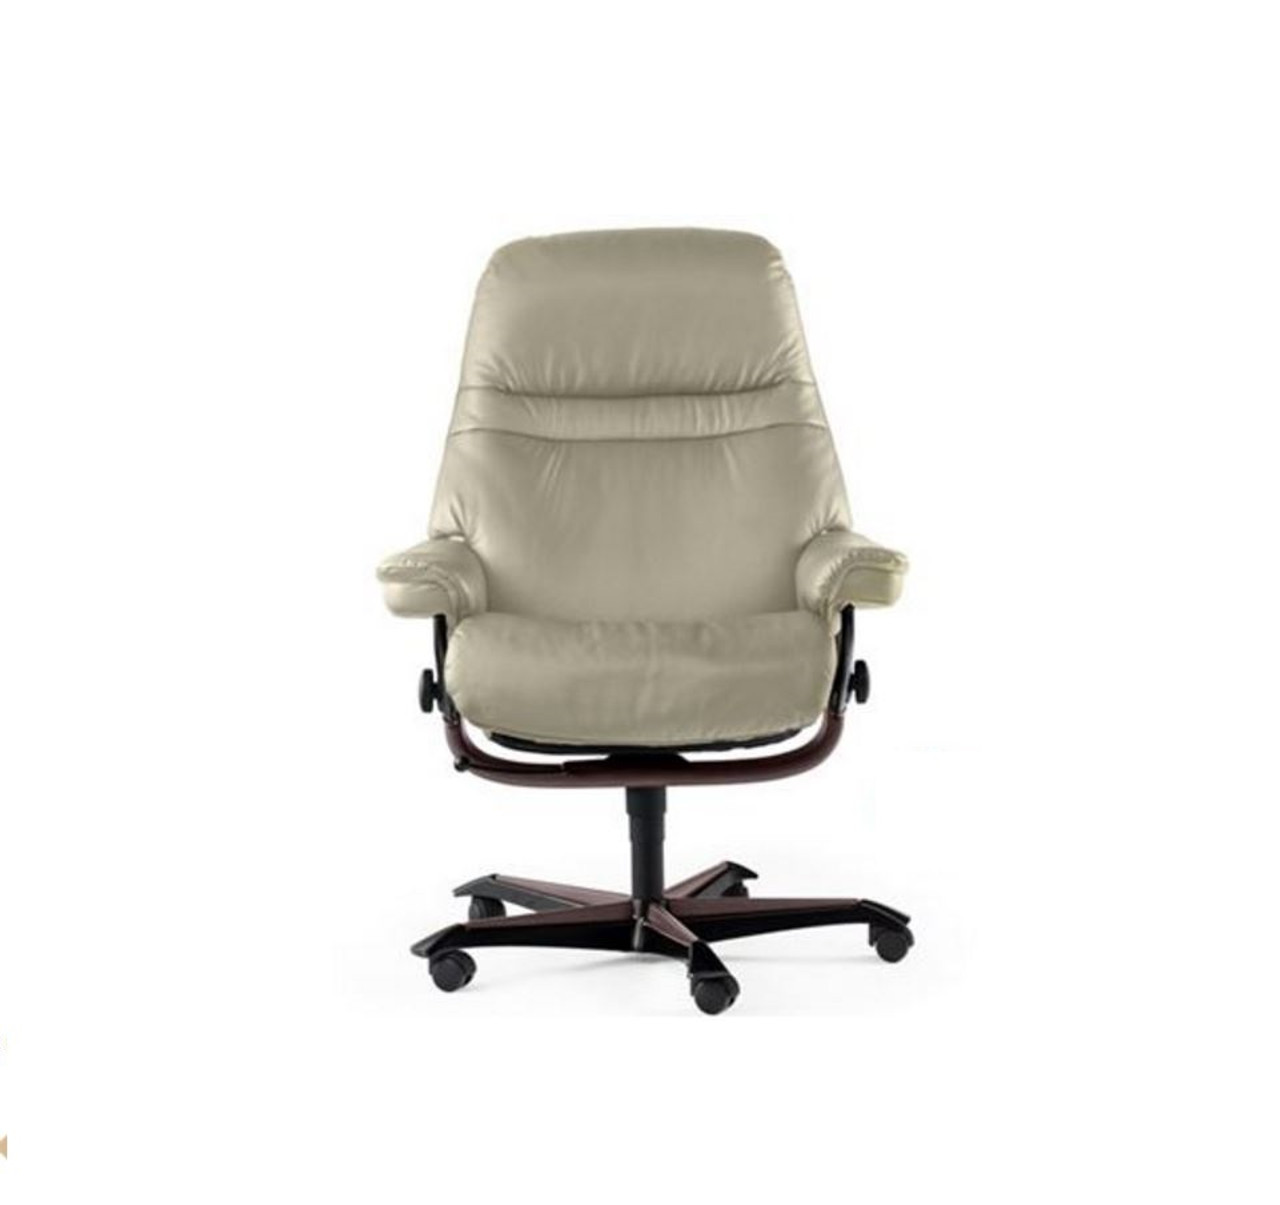 Stressless-world.com Ekornes Stressless Sunrise Office Chair Clearance Priced Model